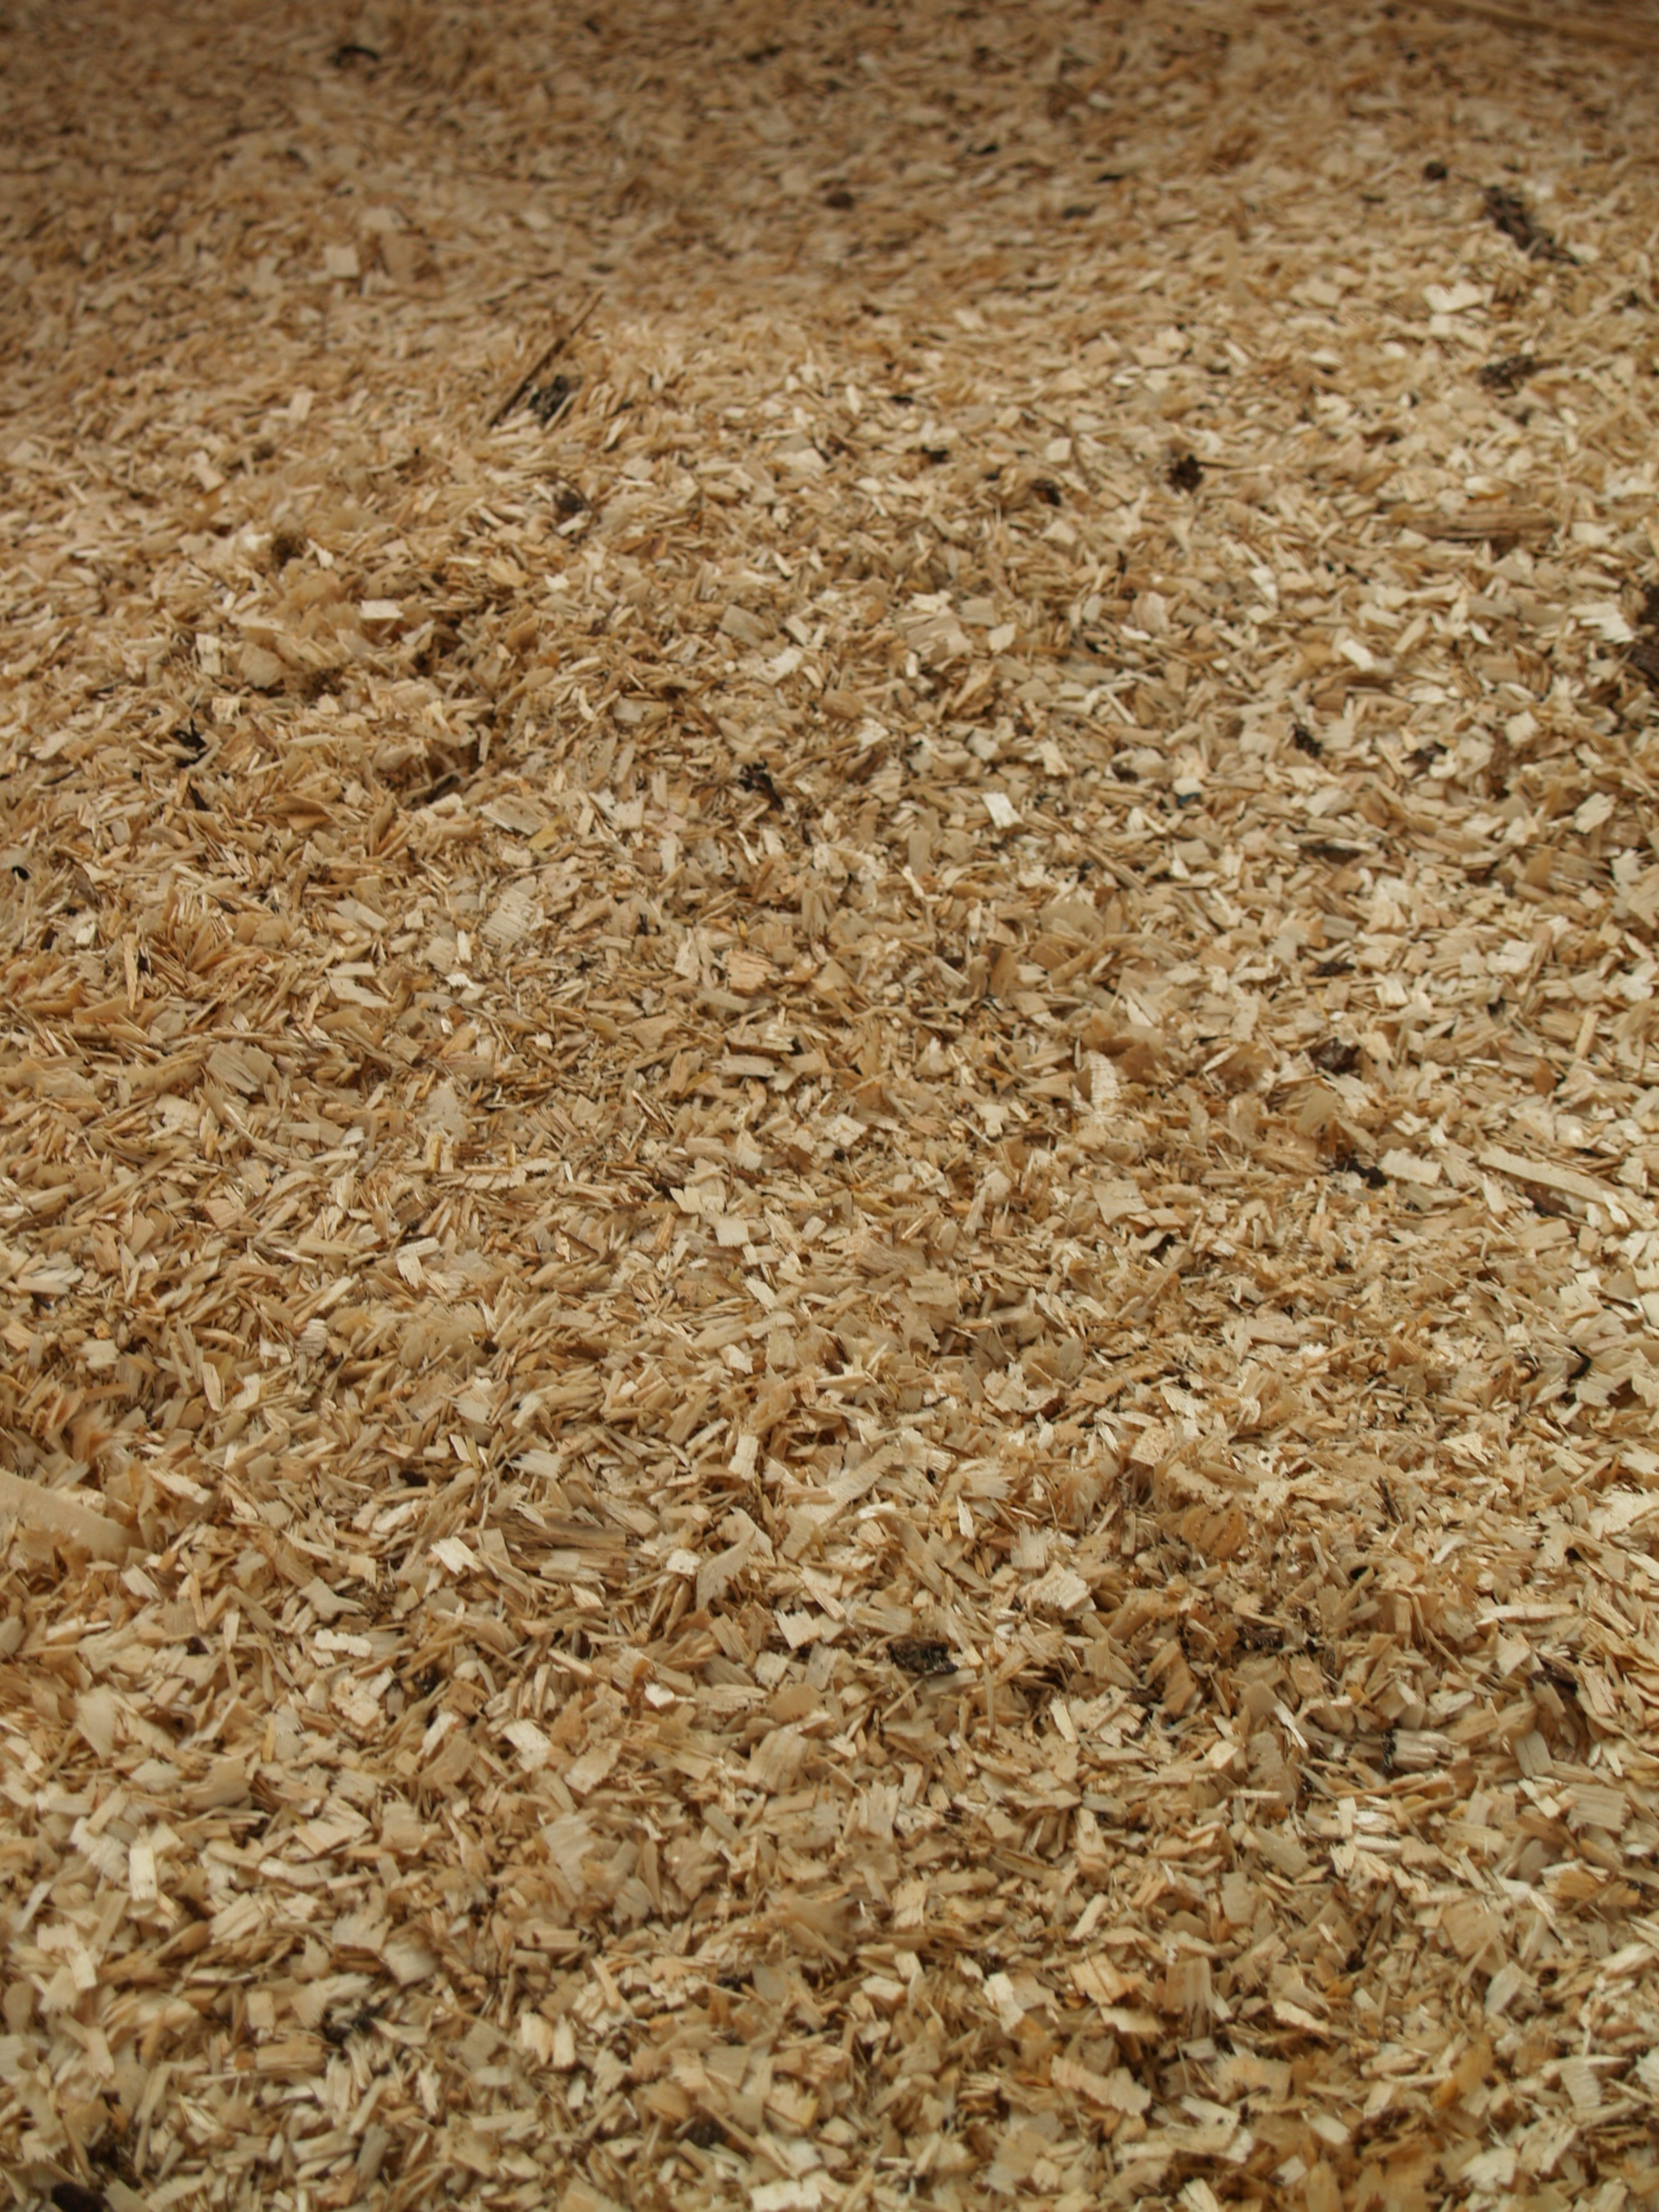 By-product: sawdust